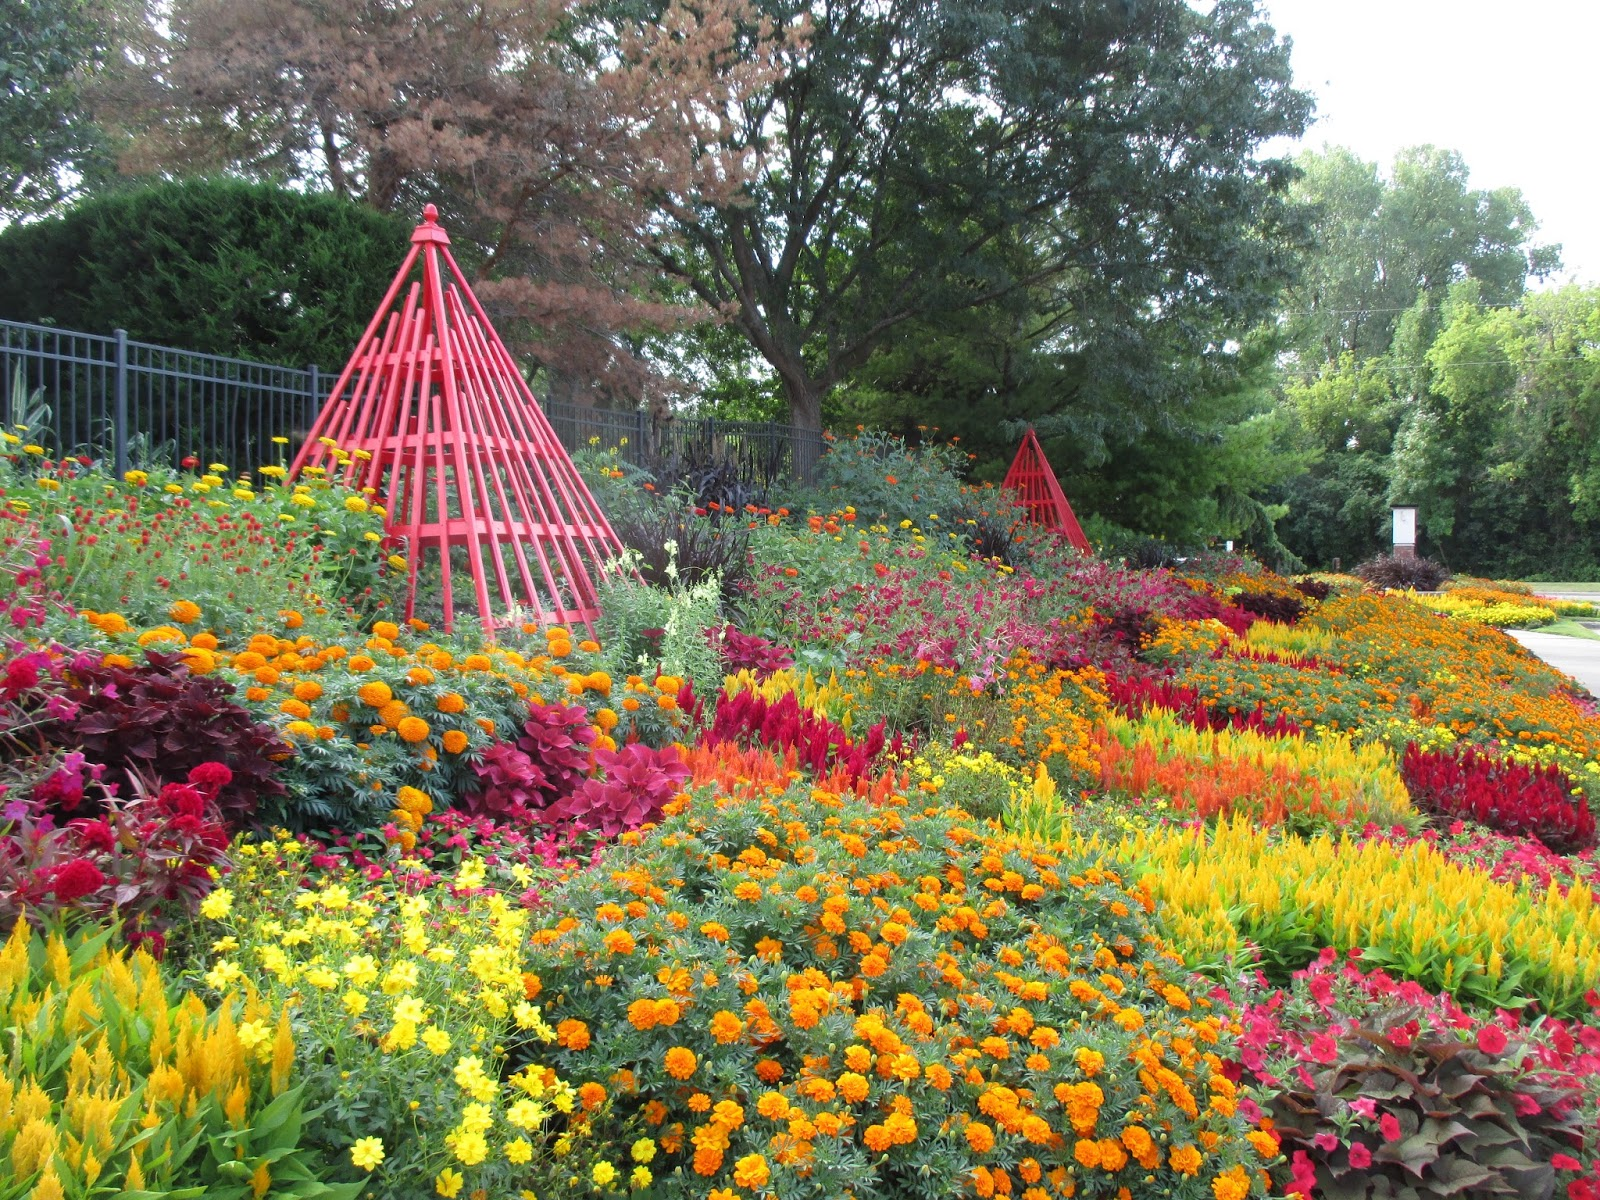 i feel our entrance garden is at peak with the reds yellows and oranges blending in quite well throughout that space as well as the terrace garden behind